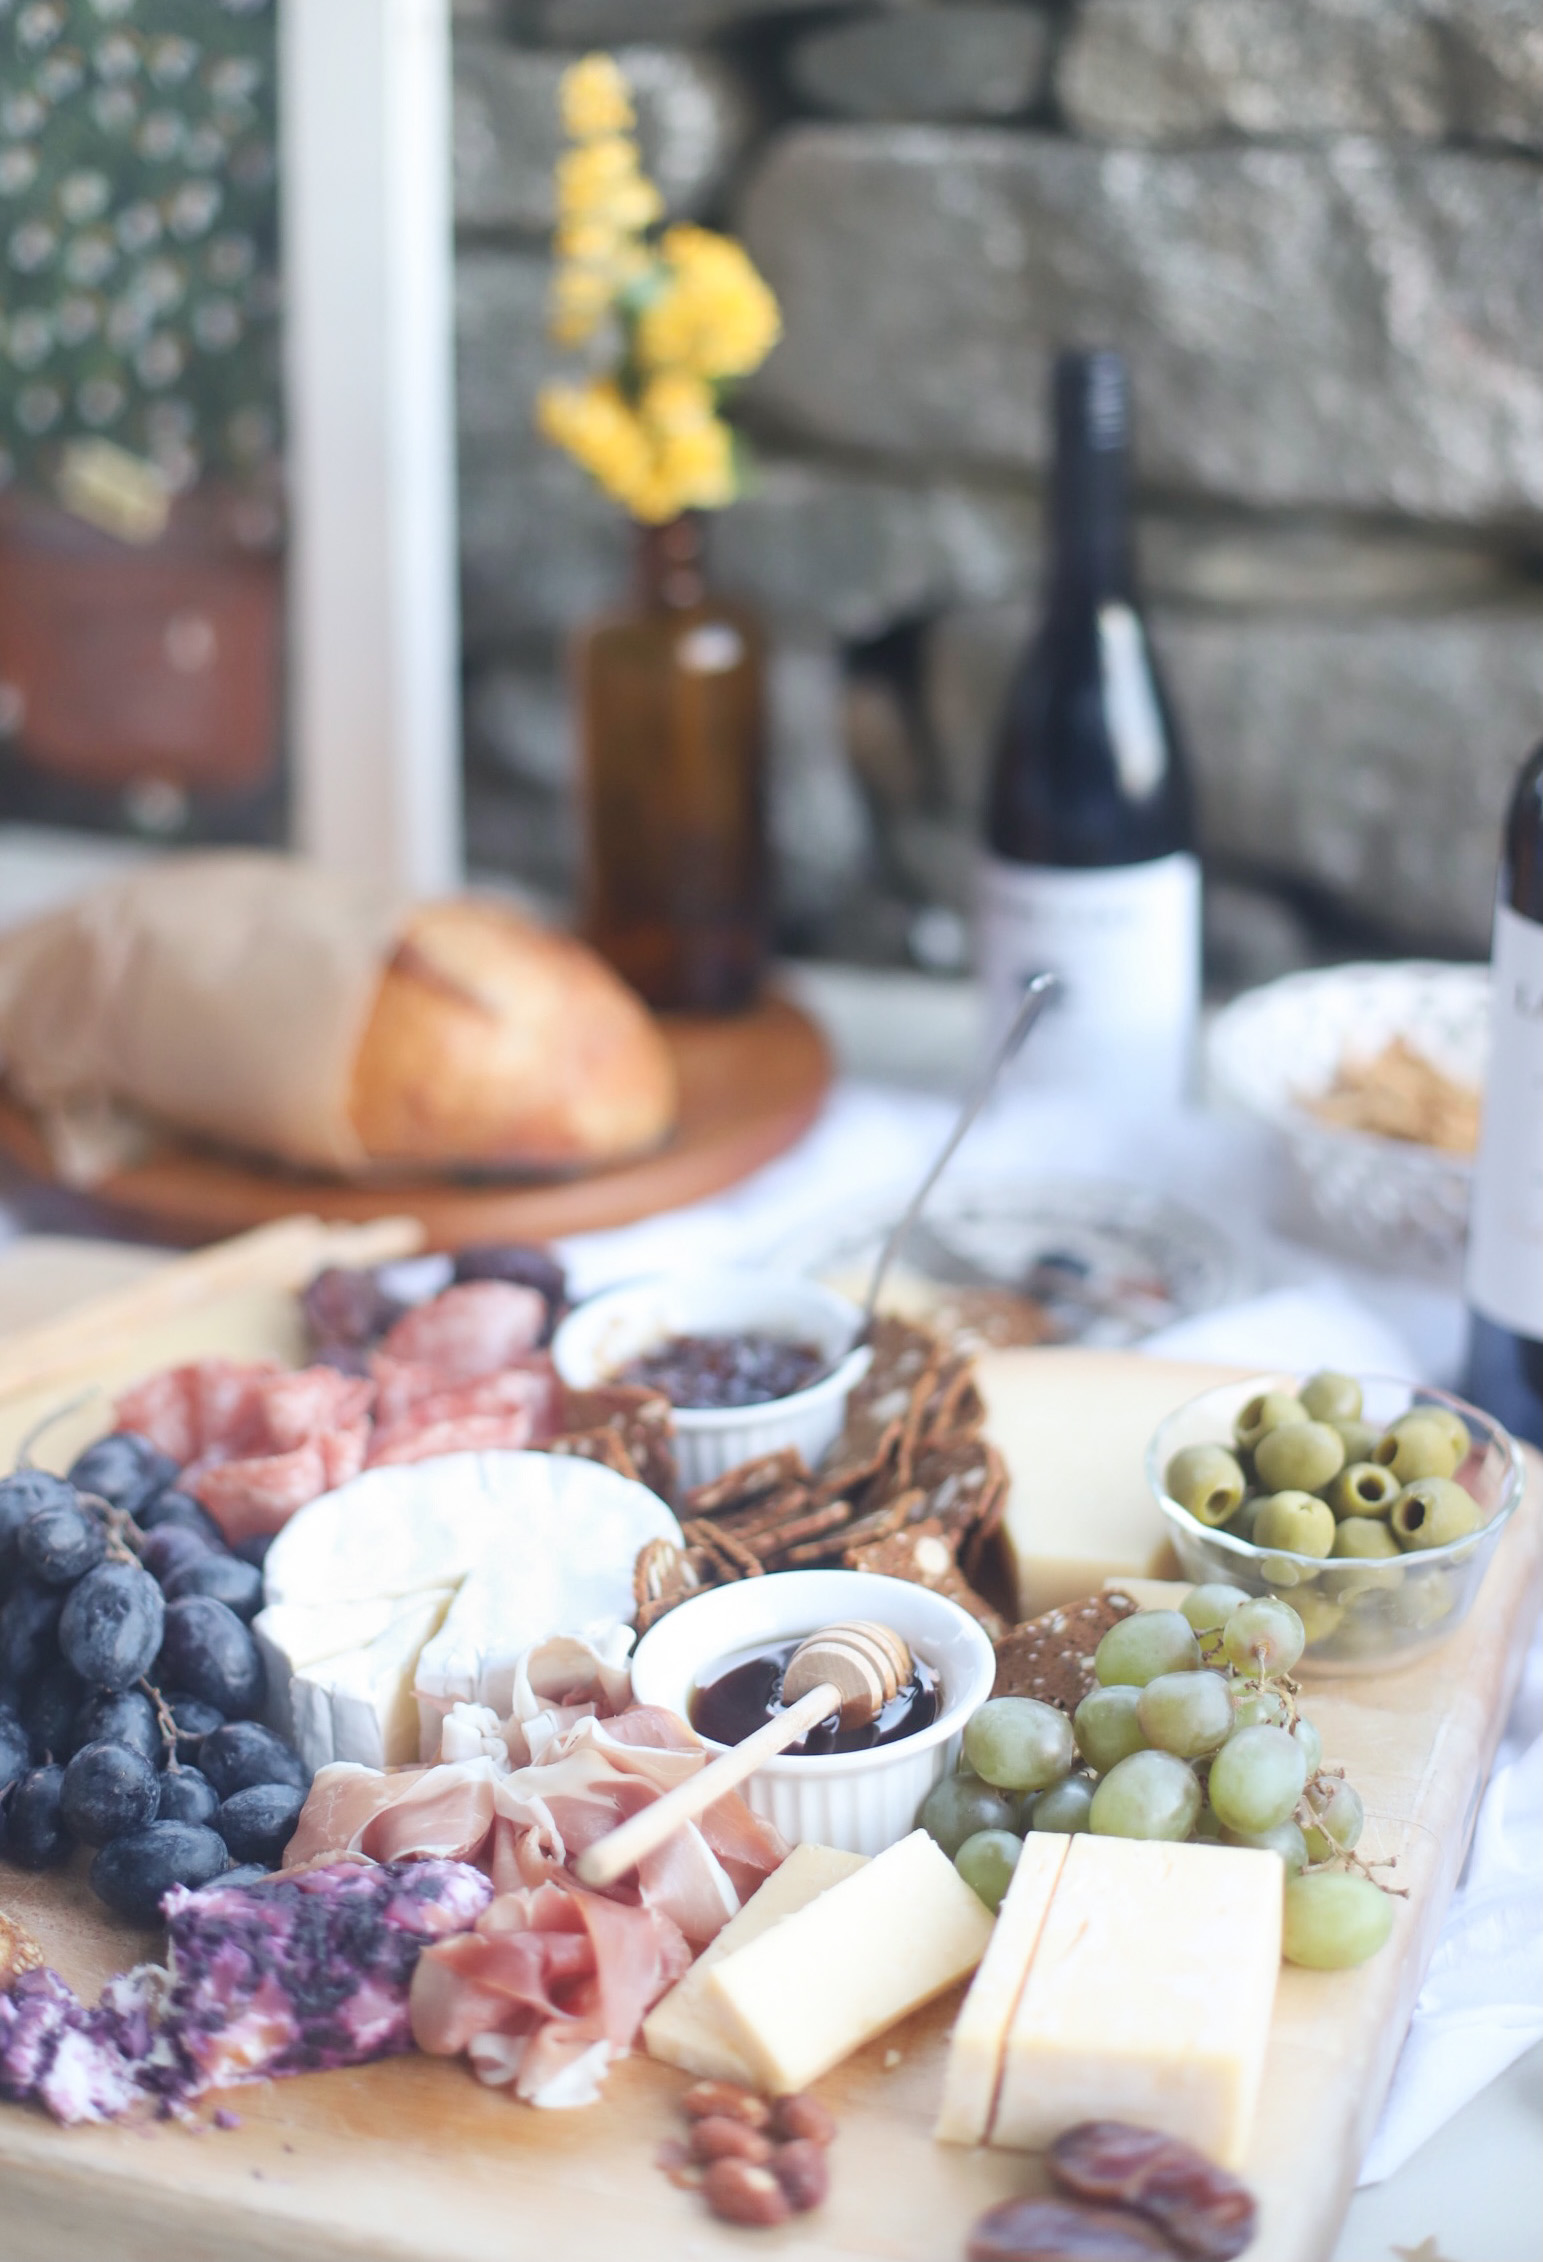 Charcuterie and Wine for a romantic dinner at home